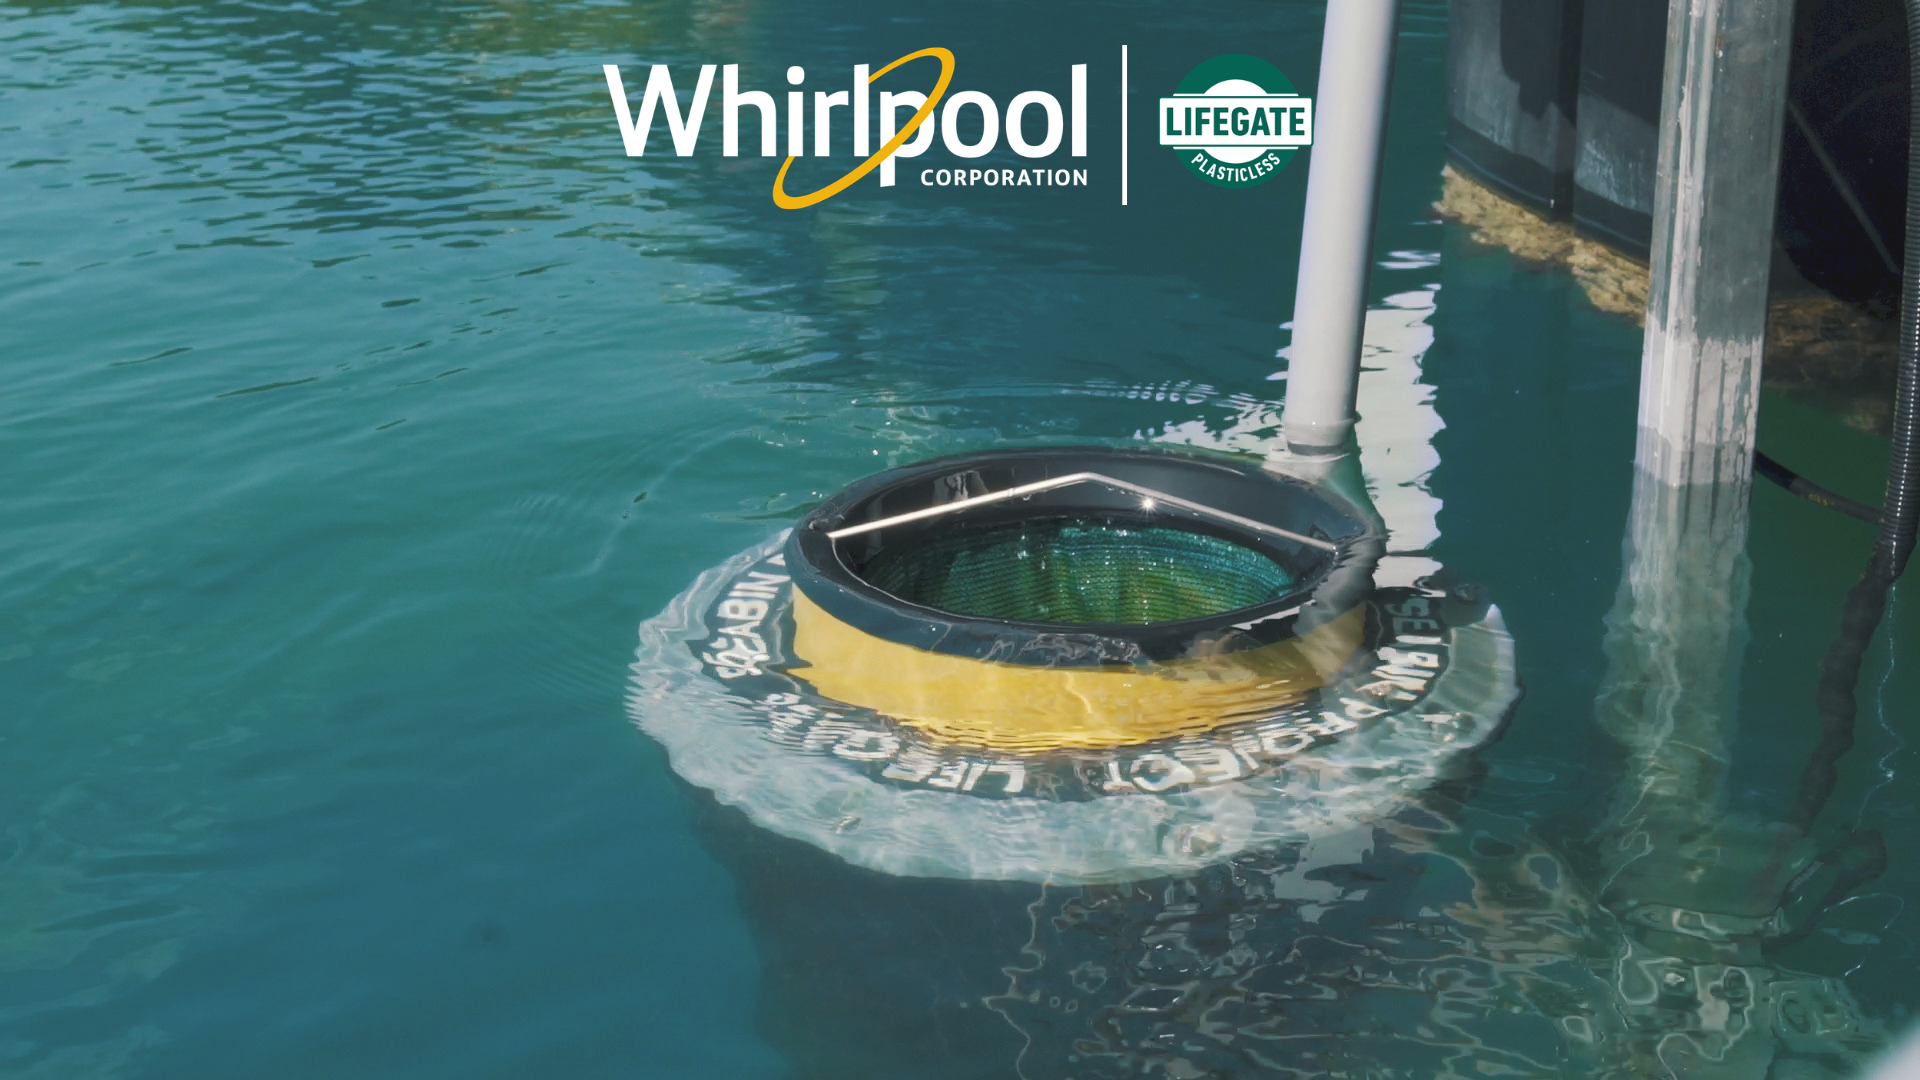 Whirlpool EMEA joins Lifegate in the fight against plastics pollution in Italy's seas 1